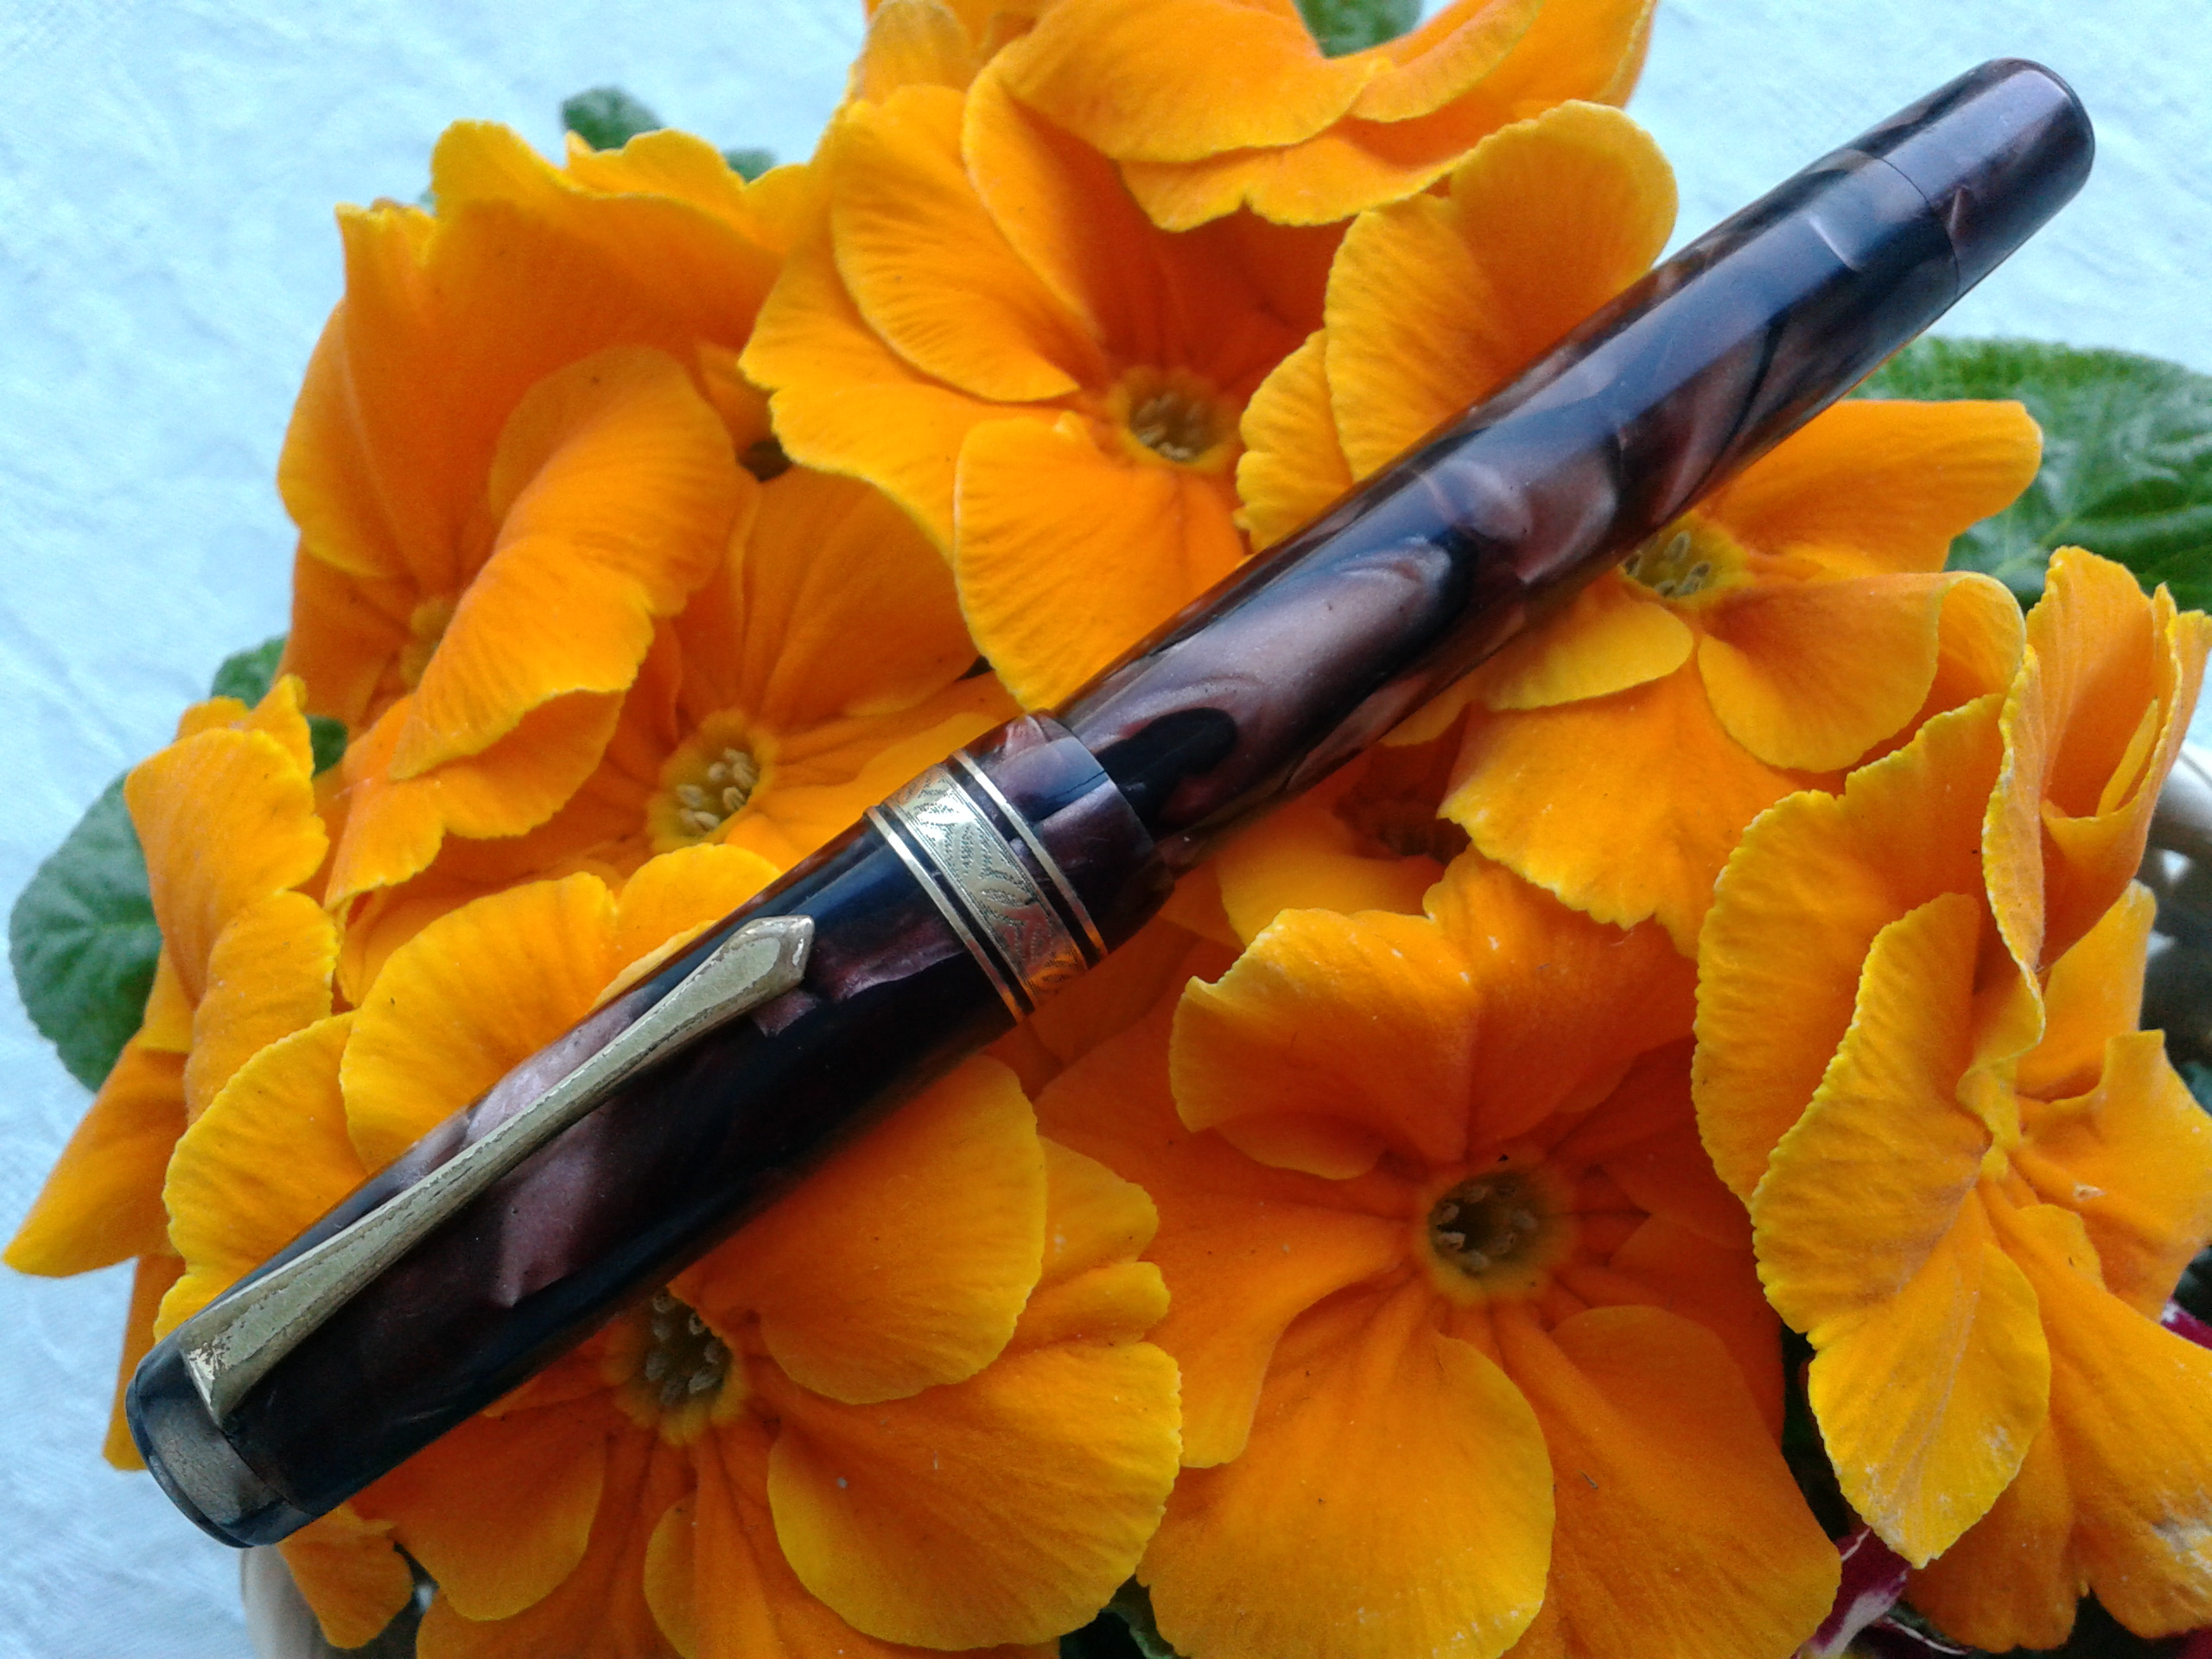 25. ASU. Buona Pasqua FountainPen.it.jpg